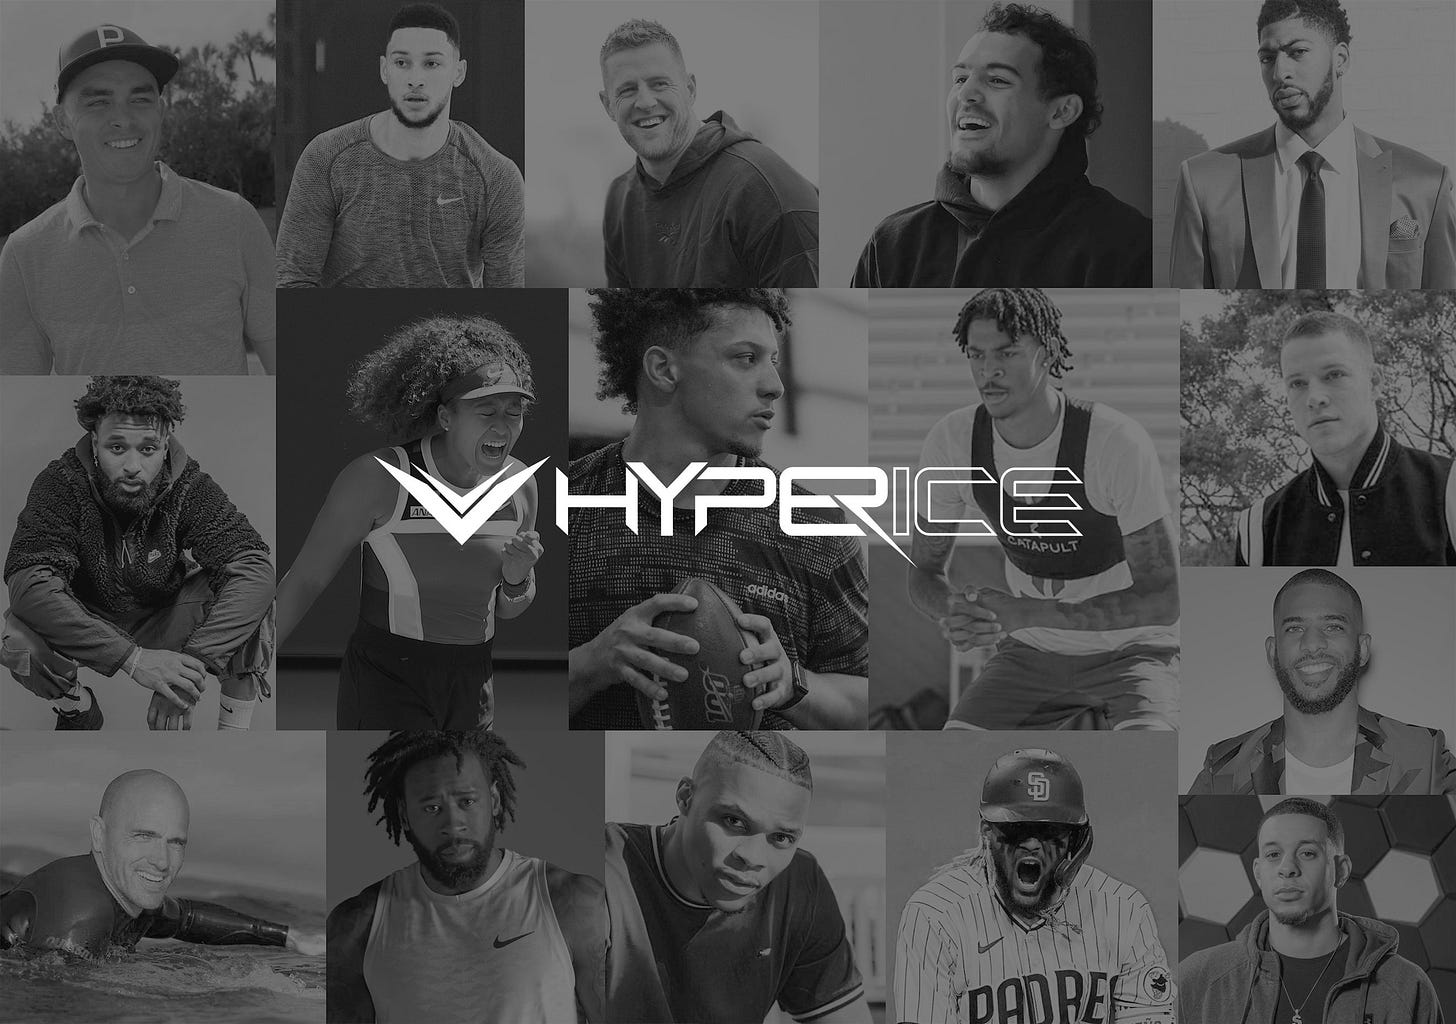 Hyperice Secures Strategic Investment from Main Street Advisors,  SC.Holdings, NFL's Investment Arm 32 Equity, NBA, and Superstar Athletes